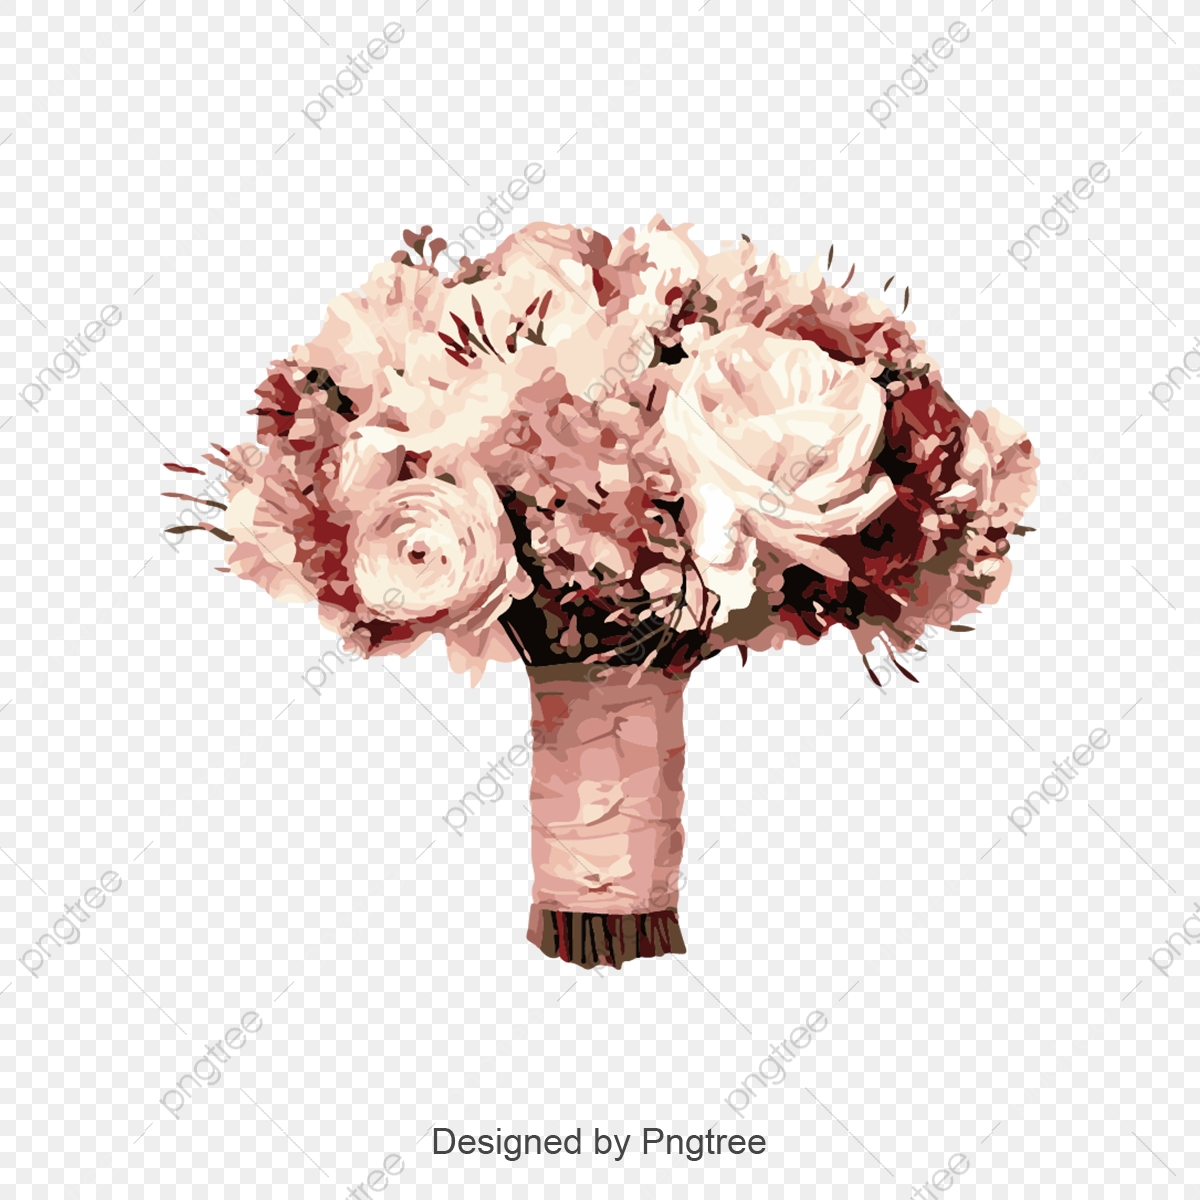 Free Bridal Bouquet Cliparts, Download Free Clip Art, Free Clip Art on  Clipart Library